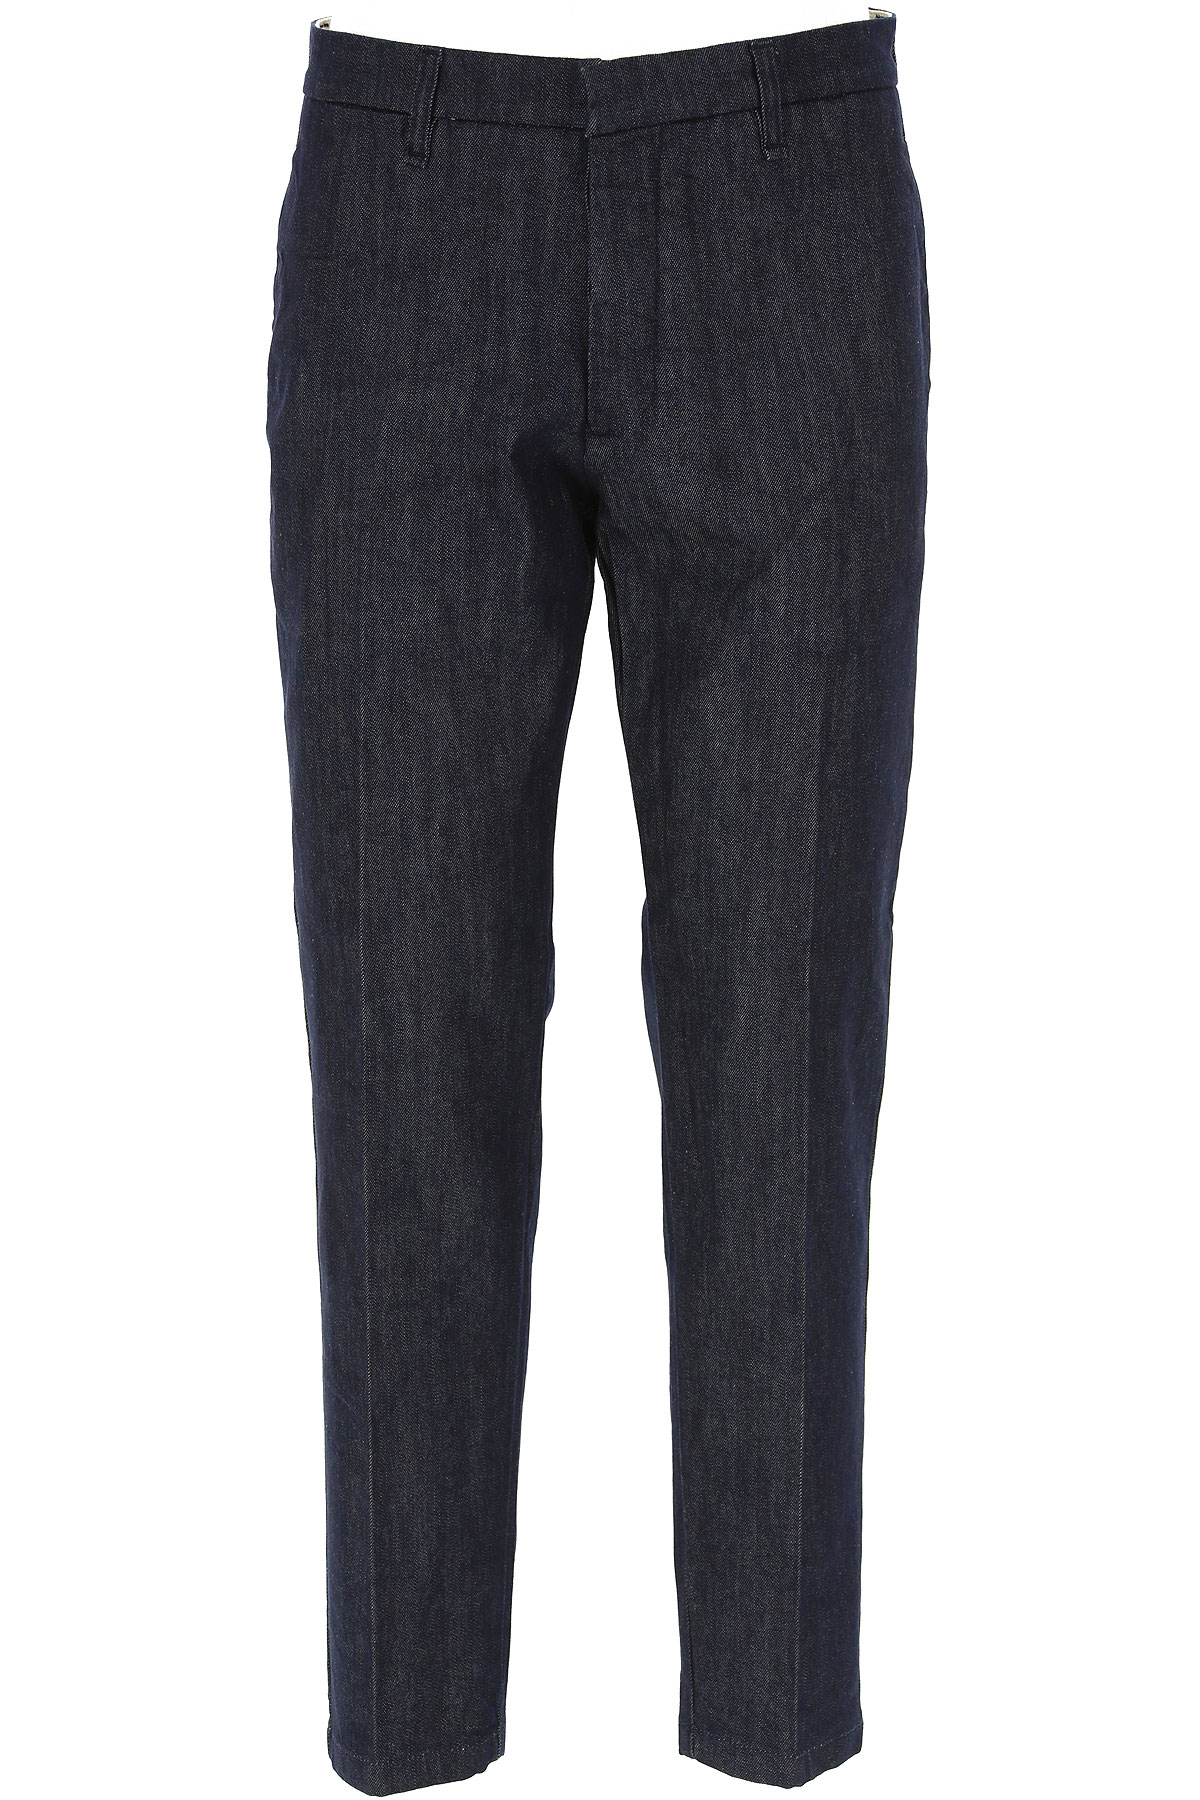 J.W. Brine Pants for Men, Dark Denim Blue, Cotton, 2019, 30 32 34 36 38